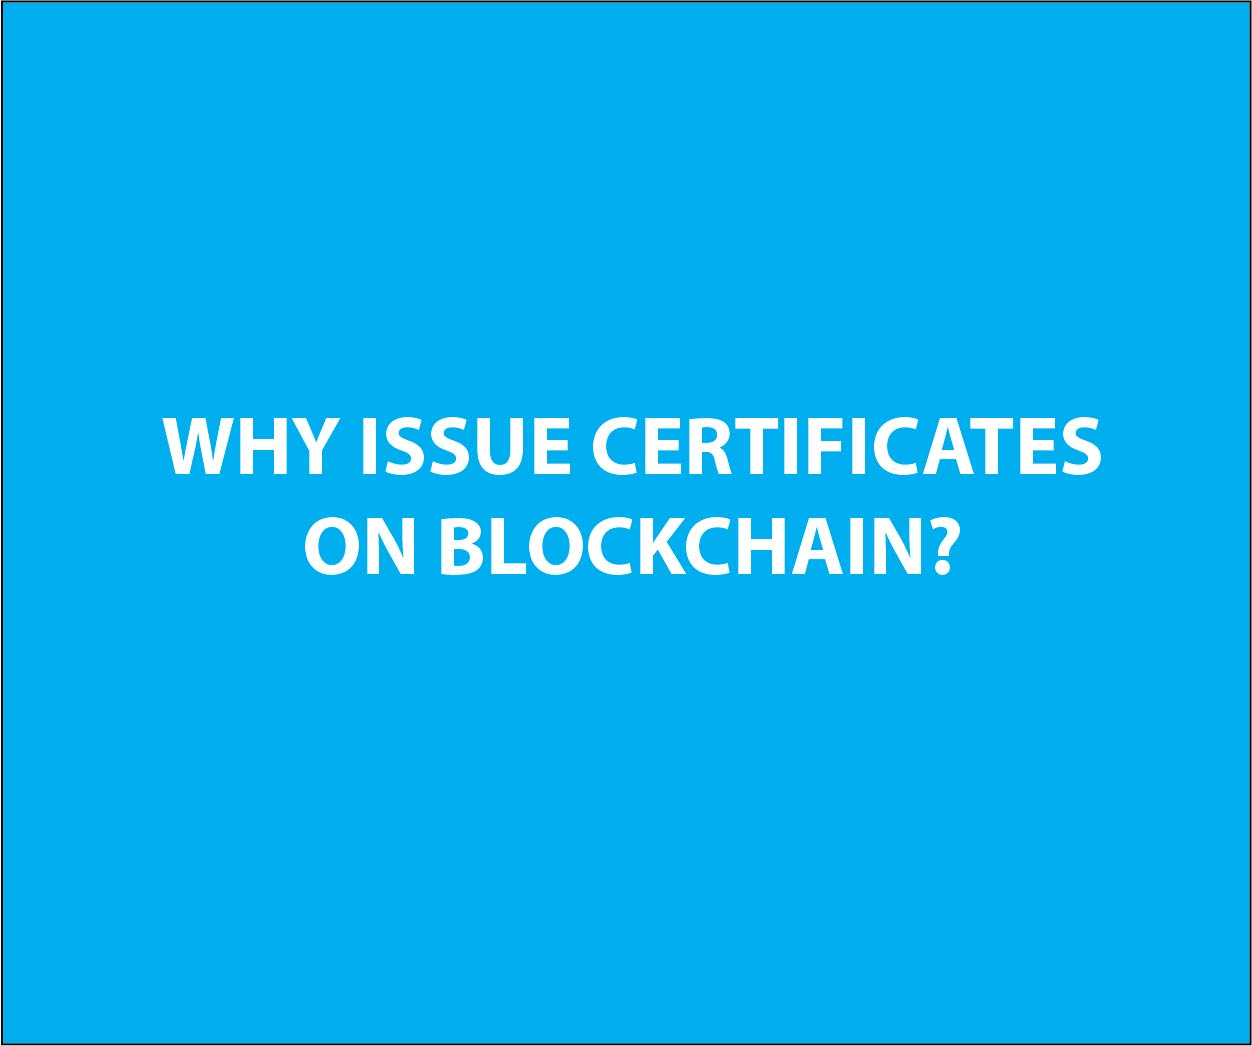 Certidapp - Why issue certificate on bLockchain